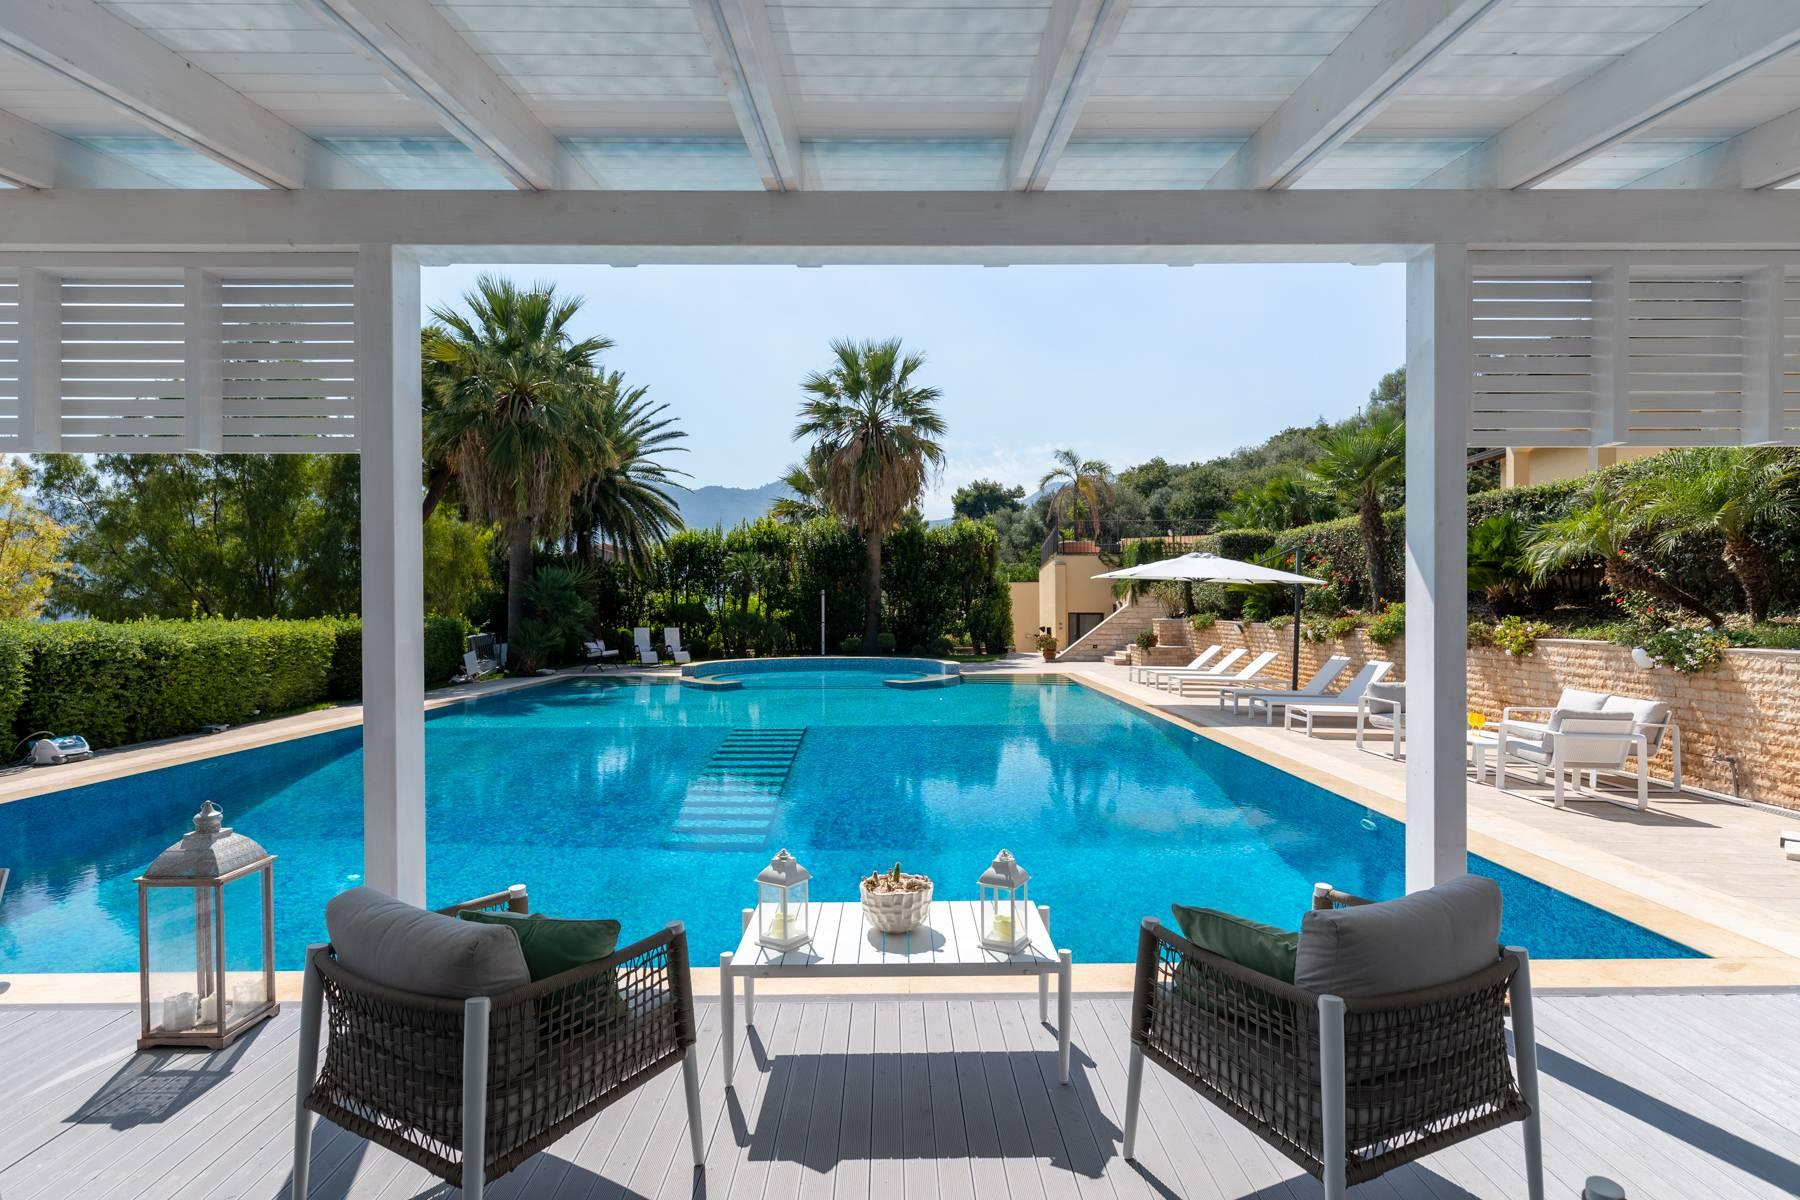 Luxurious Villa in Monreale with breathtaking views overlooking the Gulf of Palermo - 1